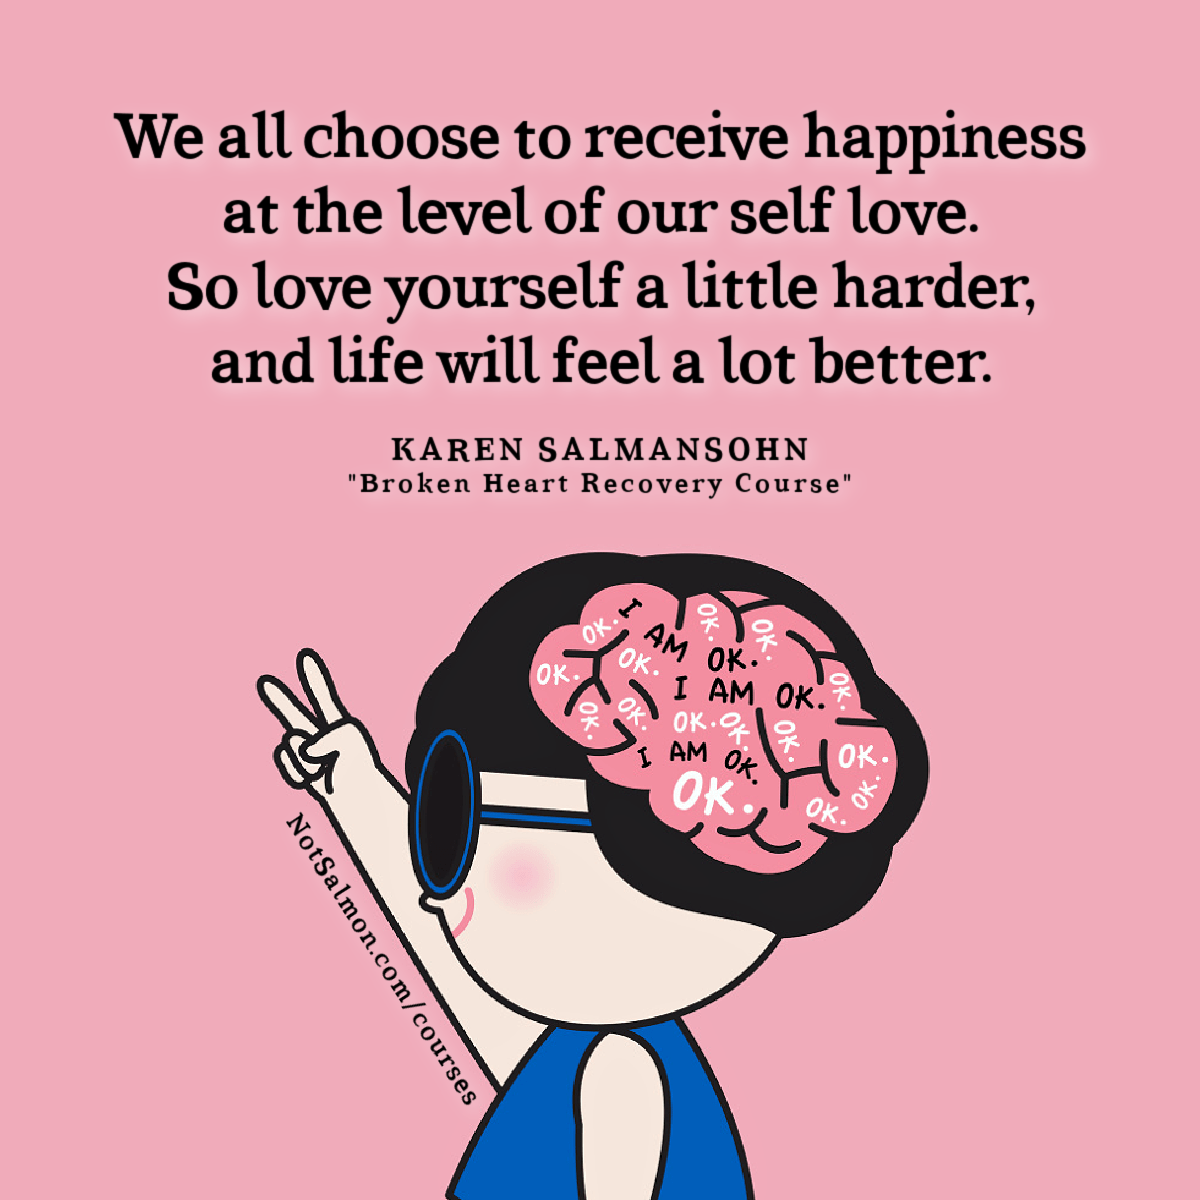 love yourself more to feel better about youself